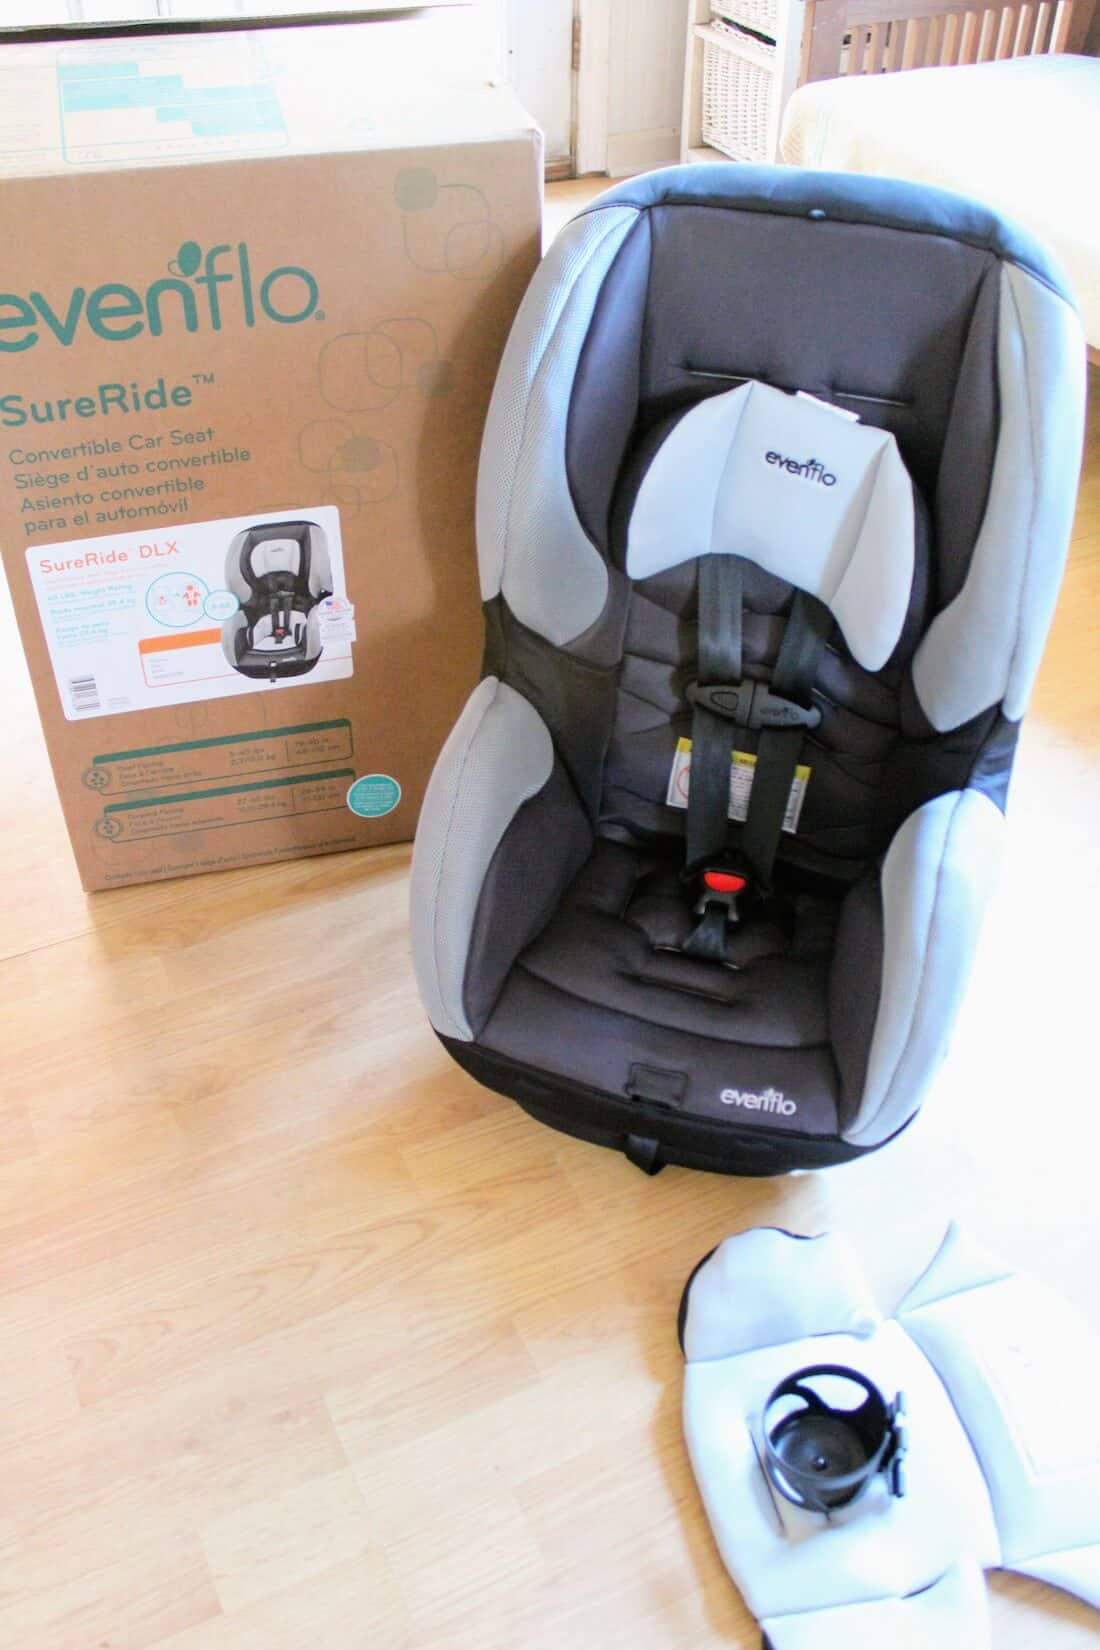 Evenflo Car Seat next to product box.